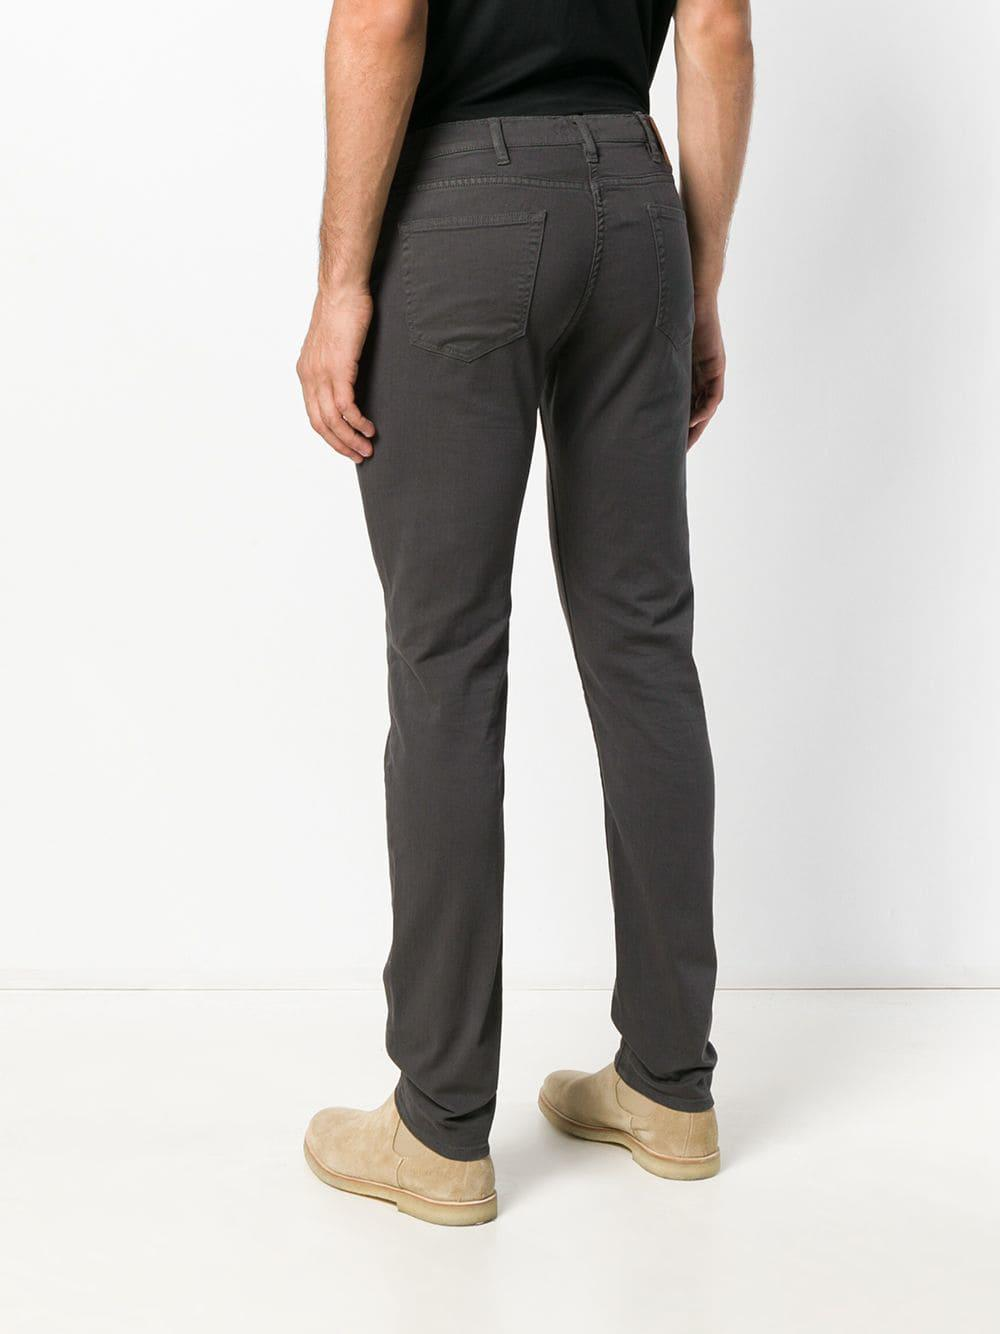 PS by Paul Smith Synthetic Slim-fit Jeans in Grey (Grey) for Men